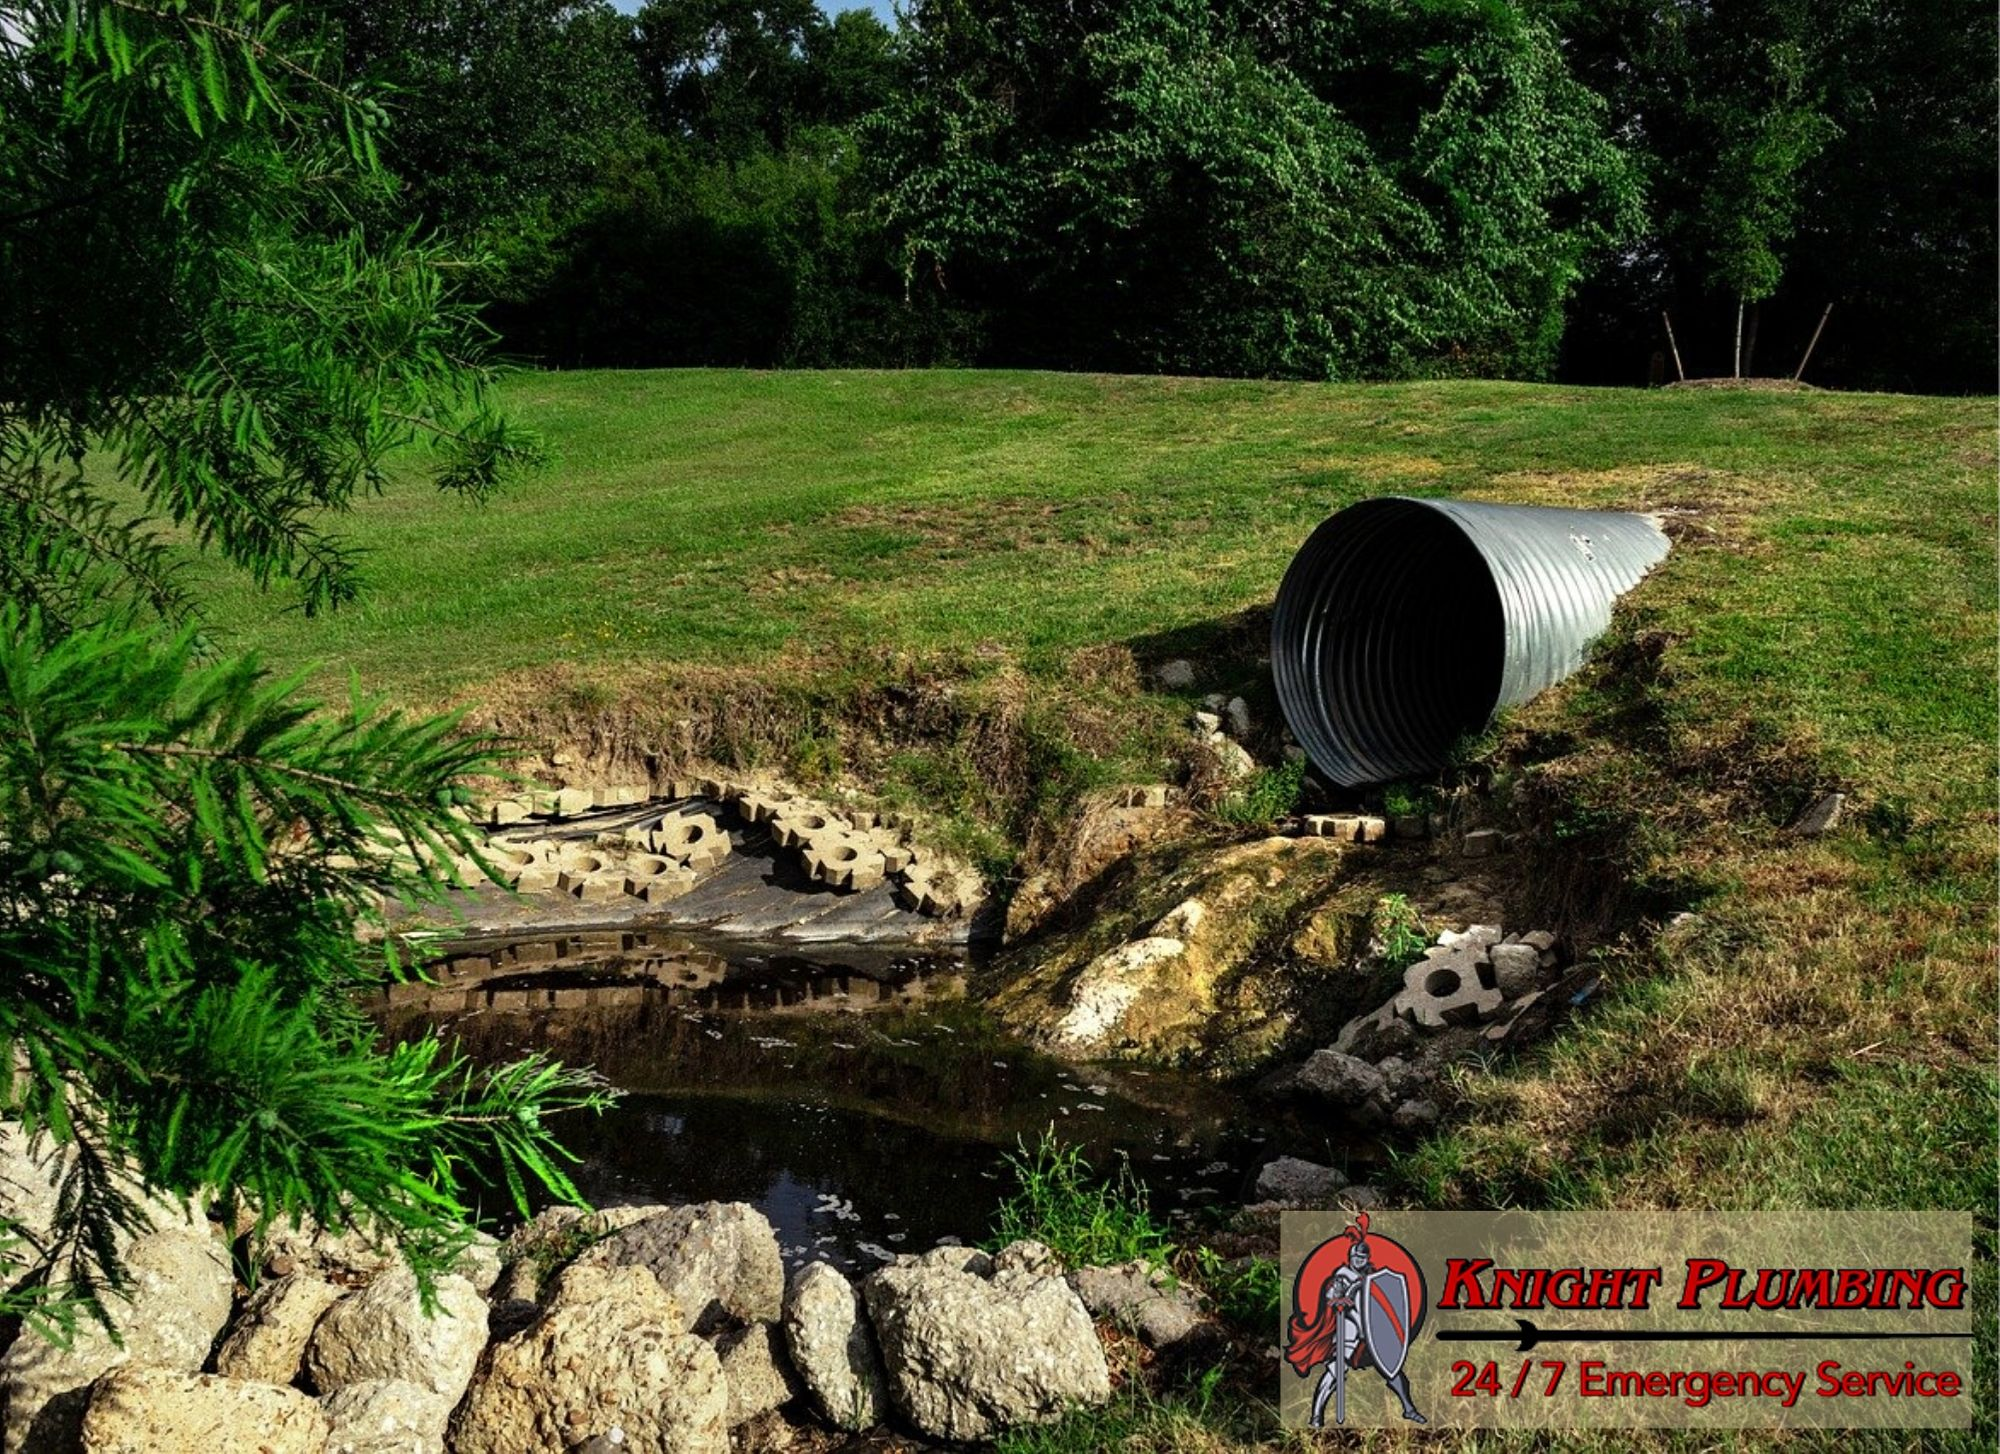 Your Sewer Line Burst! What Do You Do Now?